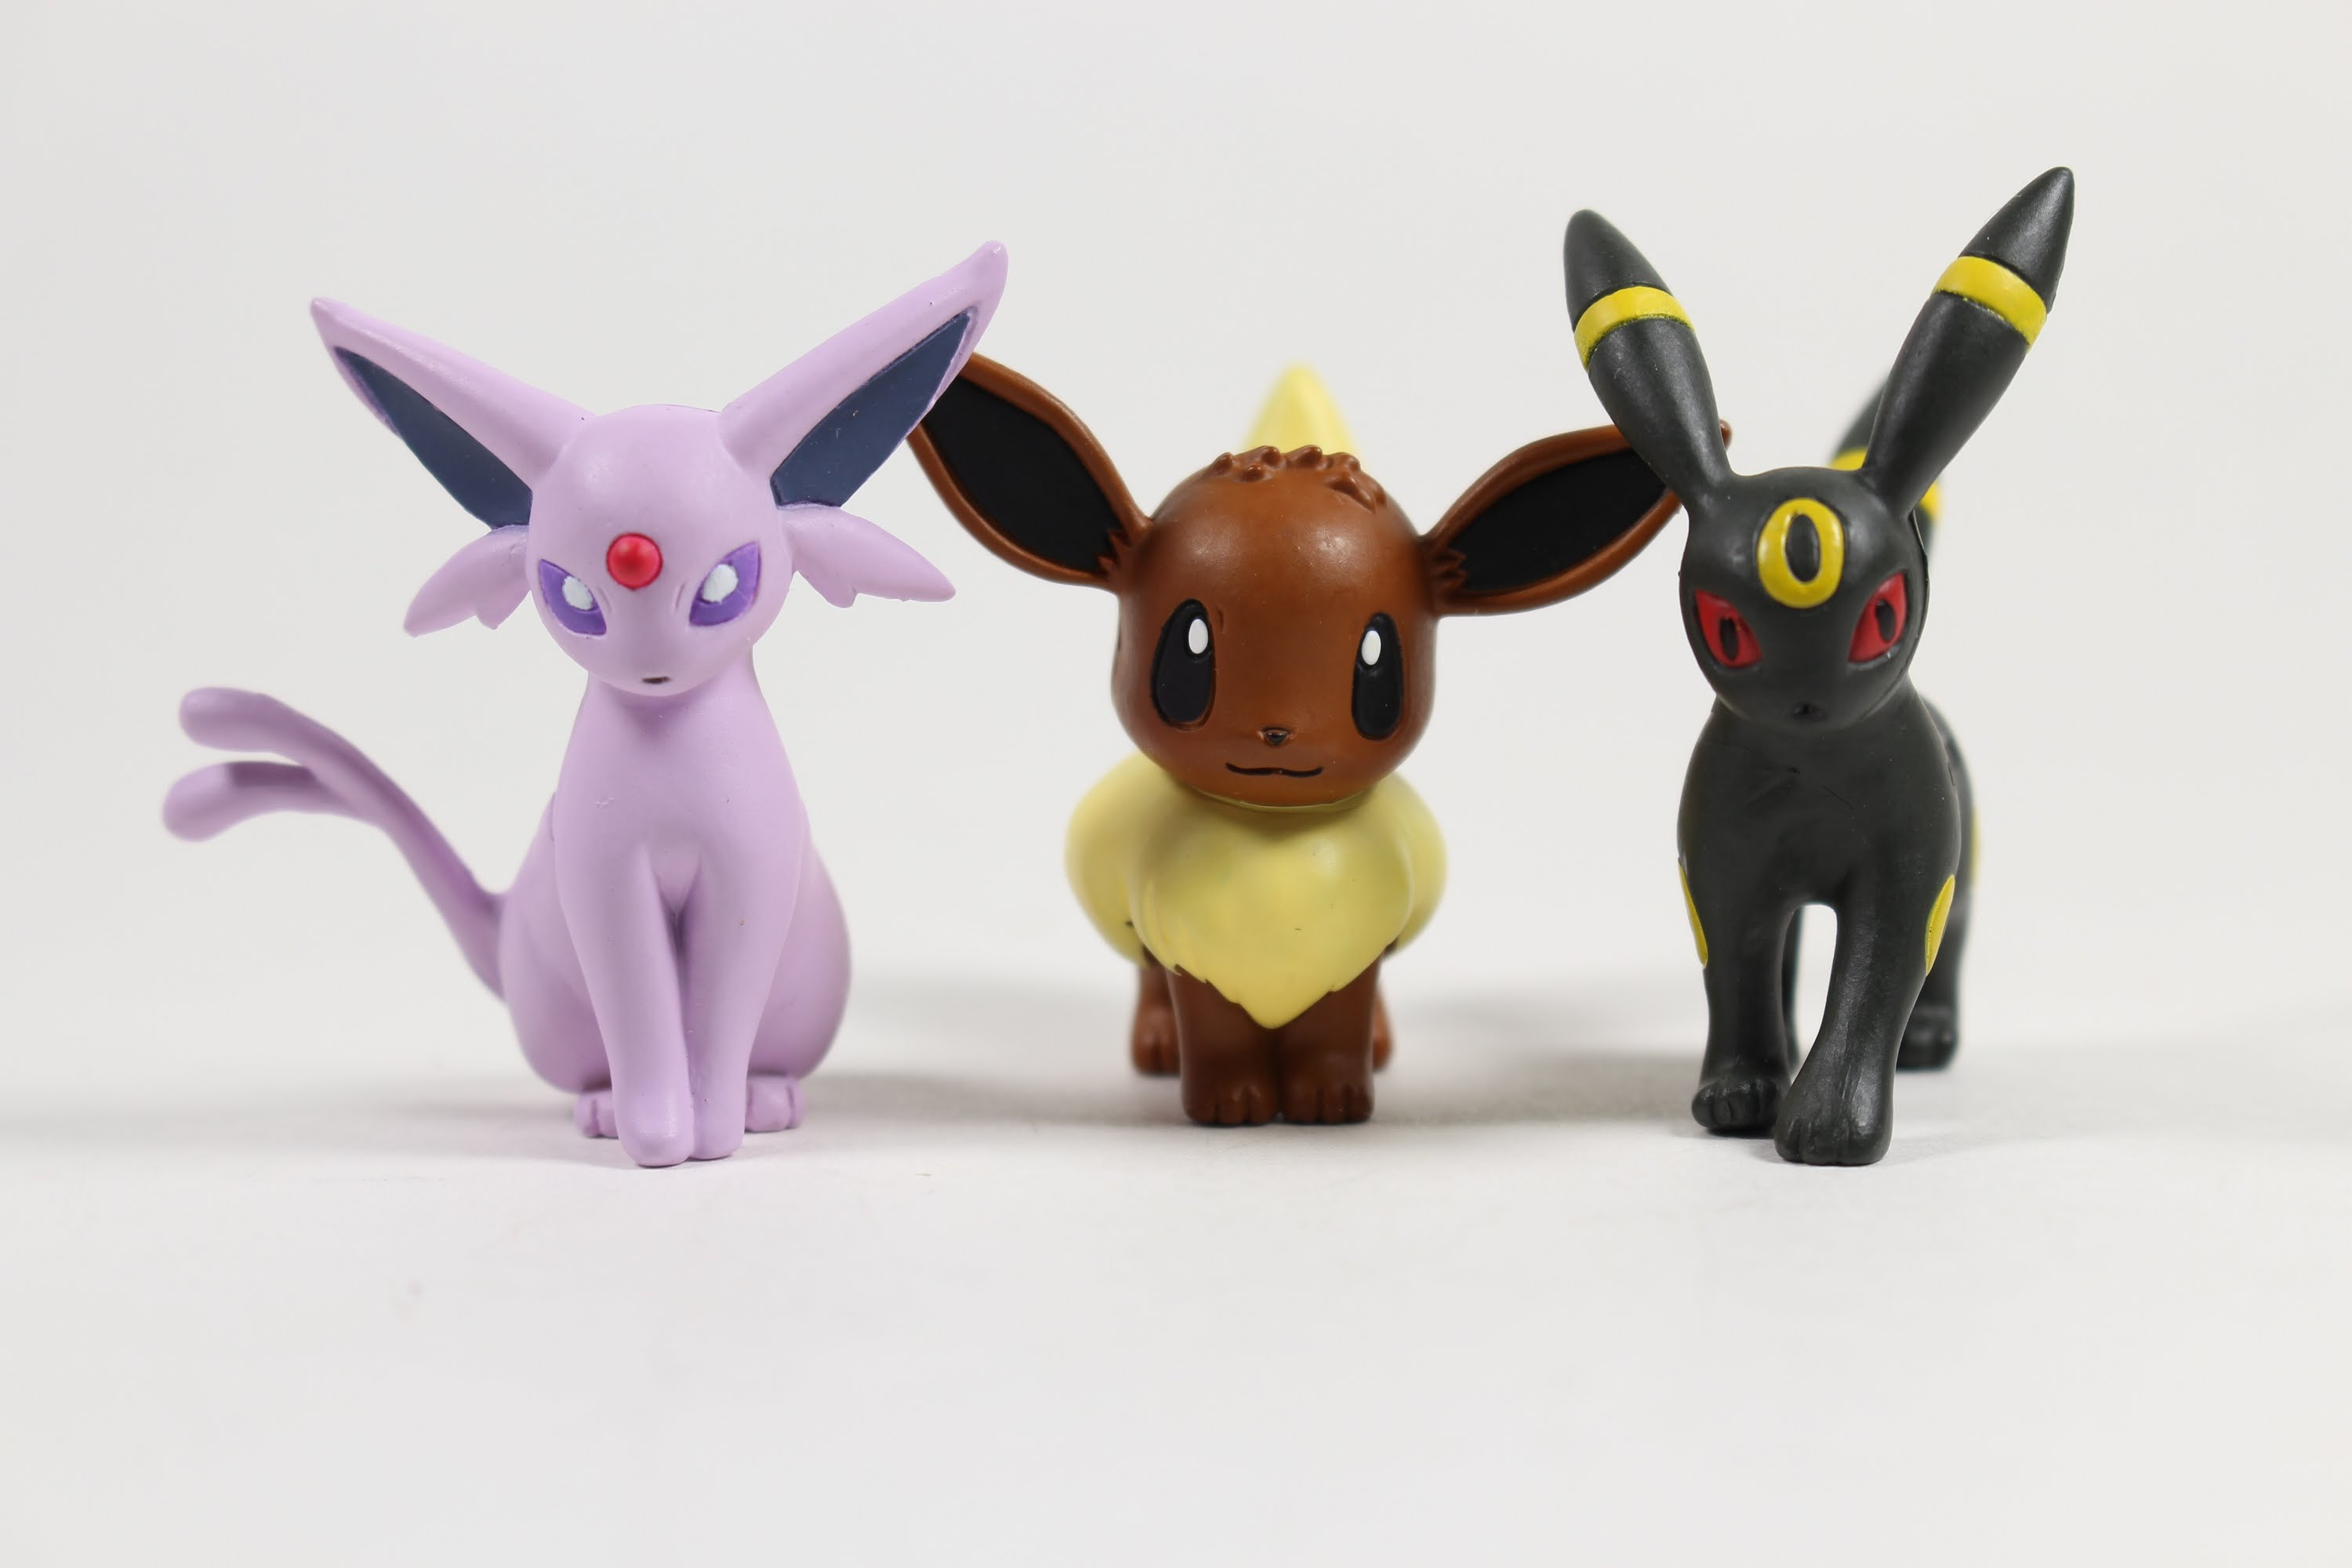 Guide: Pokemon Go has a new Eevee evolution trick for Umbreon and Espeon screenshot